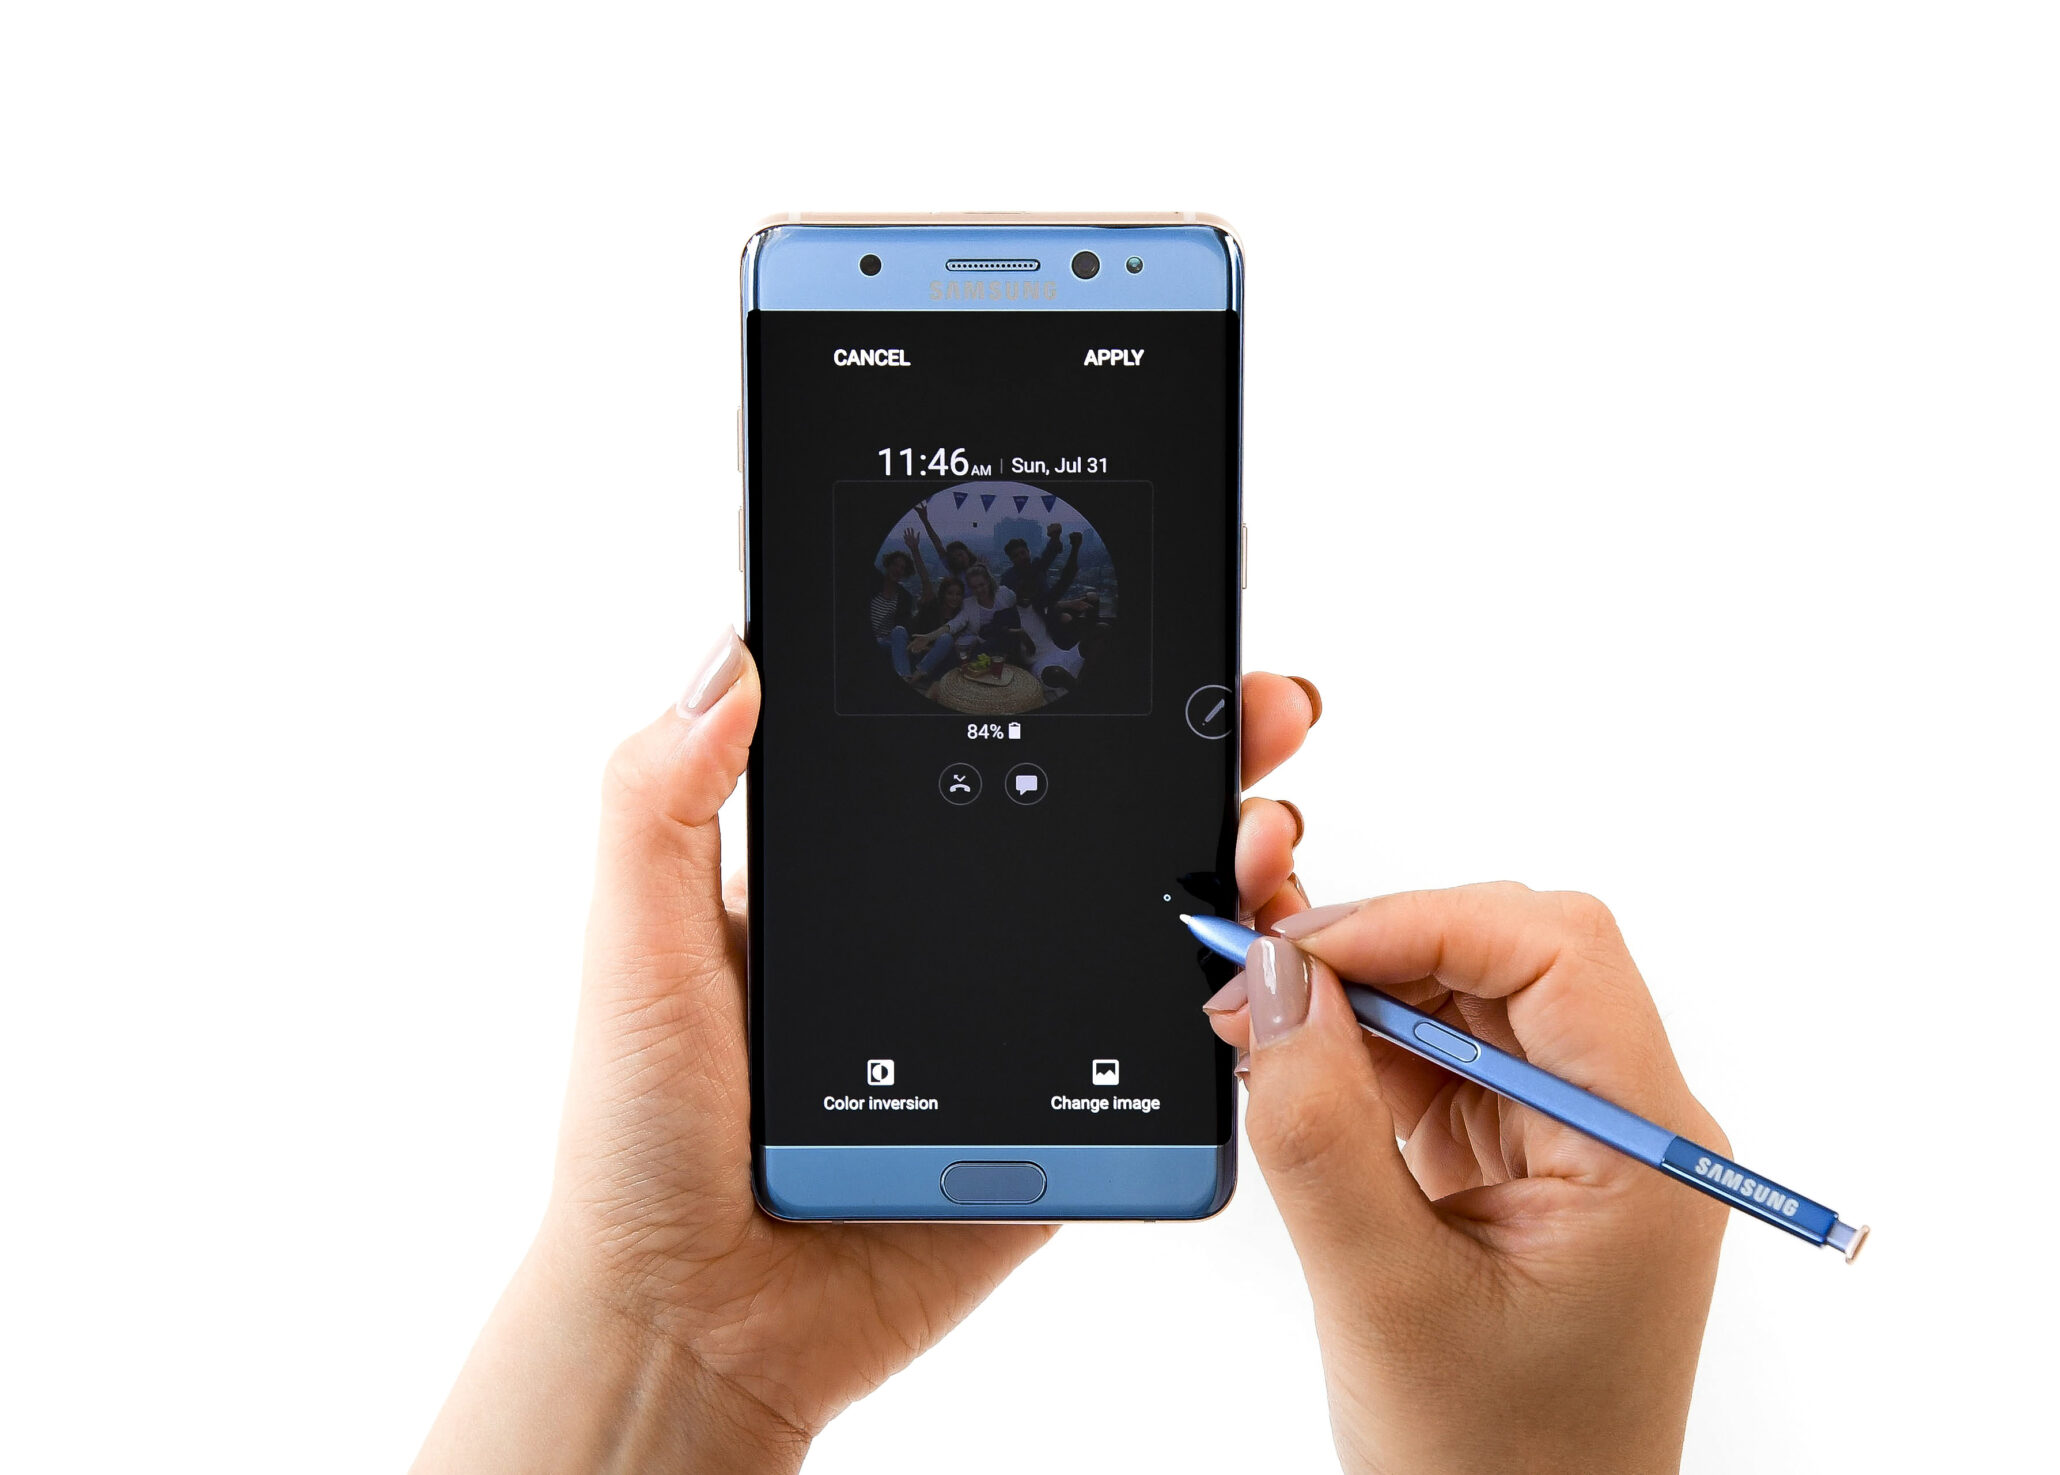 Samsung Offers Galaxy Note 7 Software to the Note 5 Owners